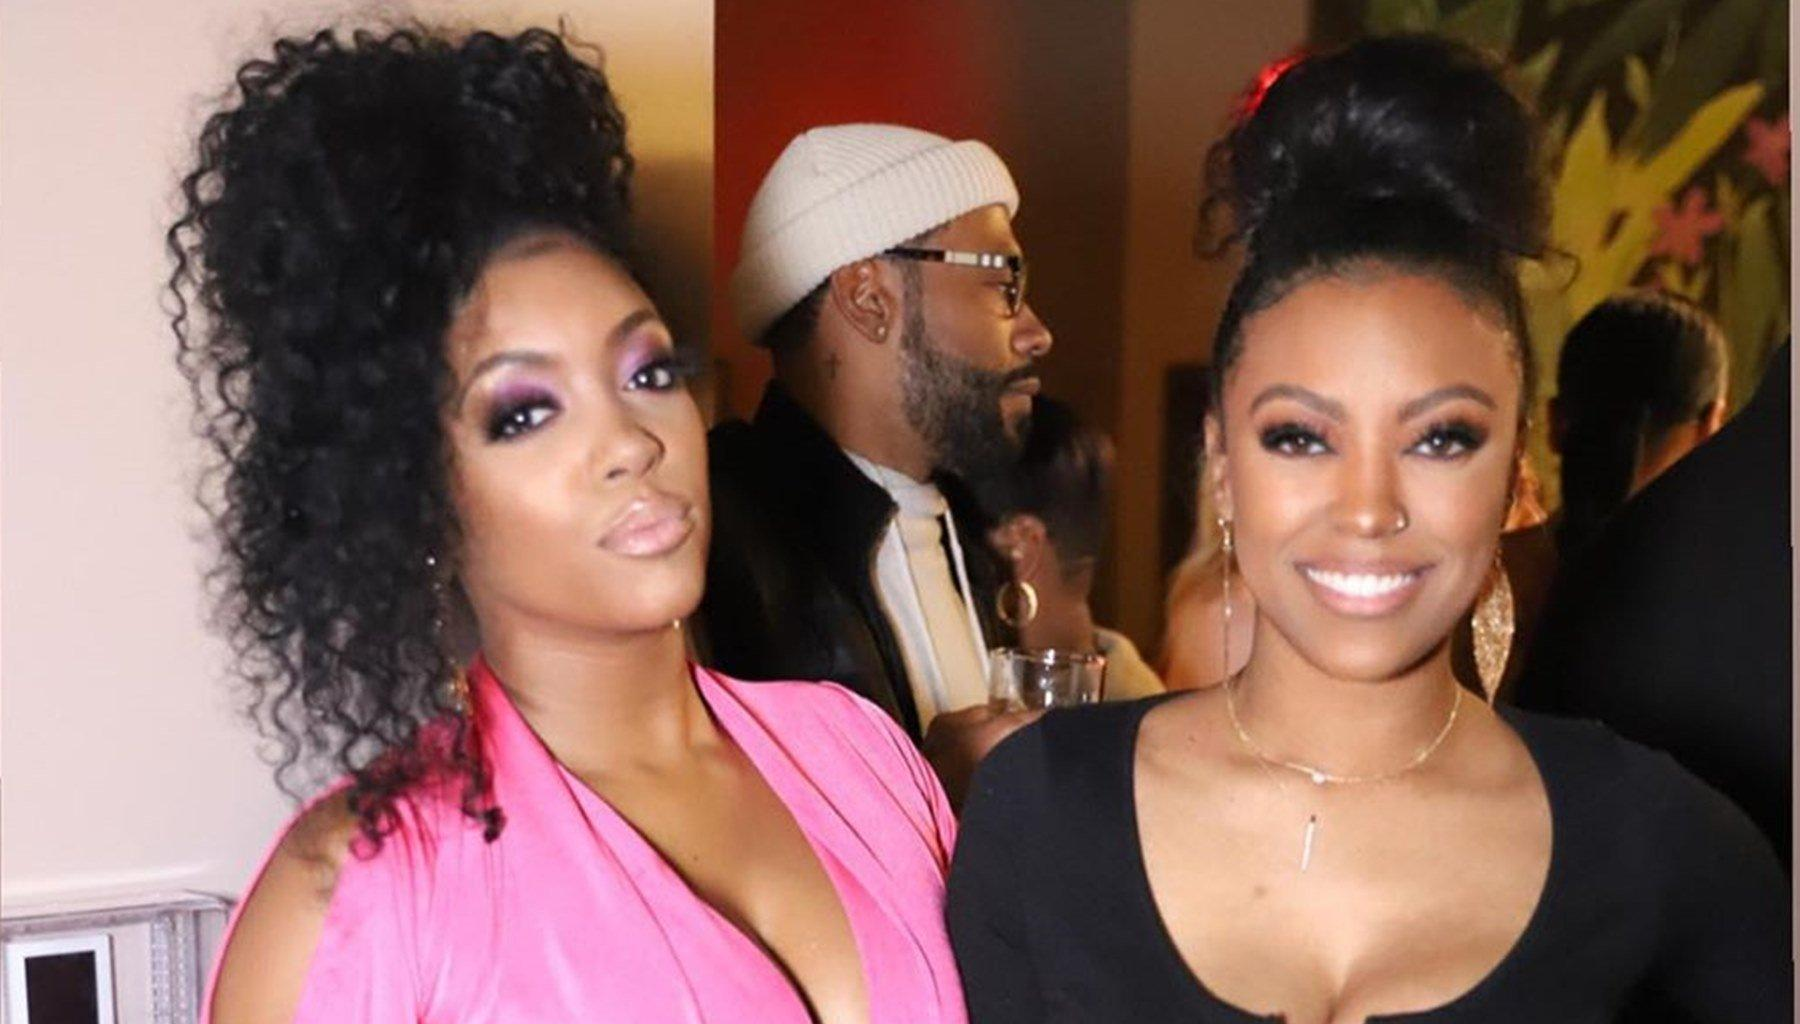 Porsha Williams Has The Best Time With Her Sister, Lauren Williams - See Them Dancing For The Camera